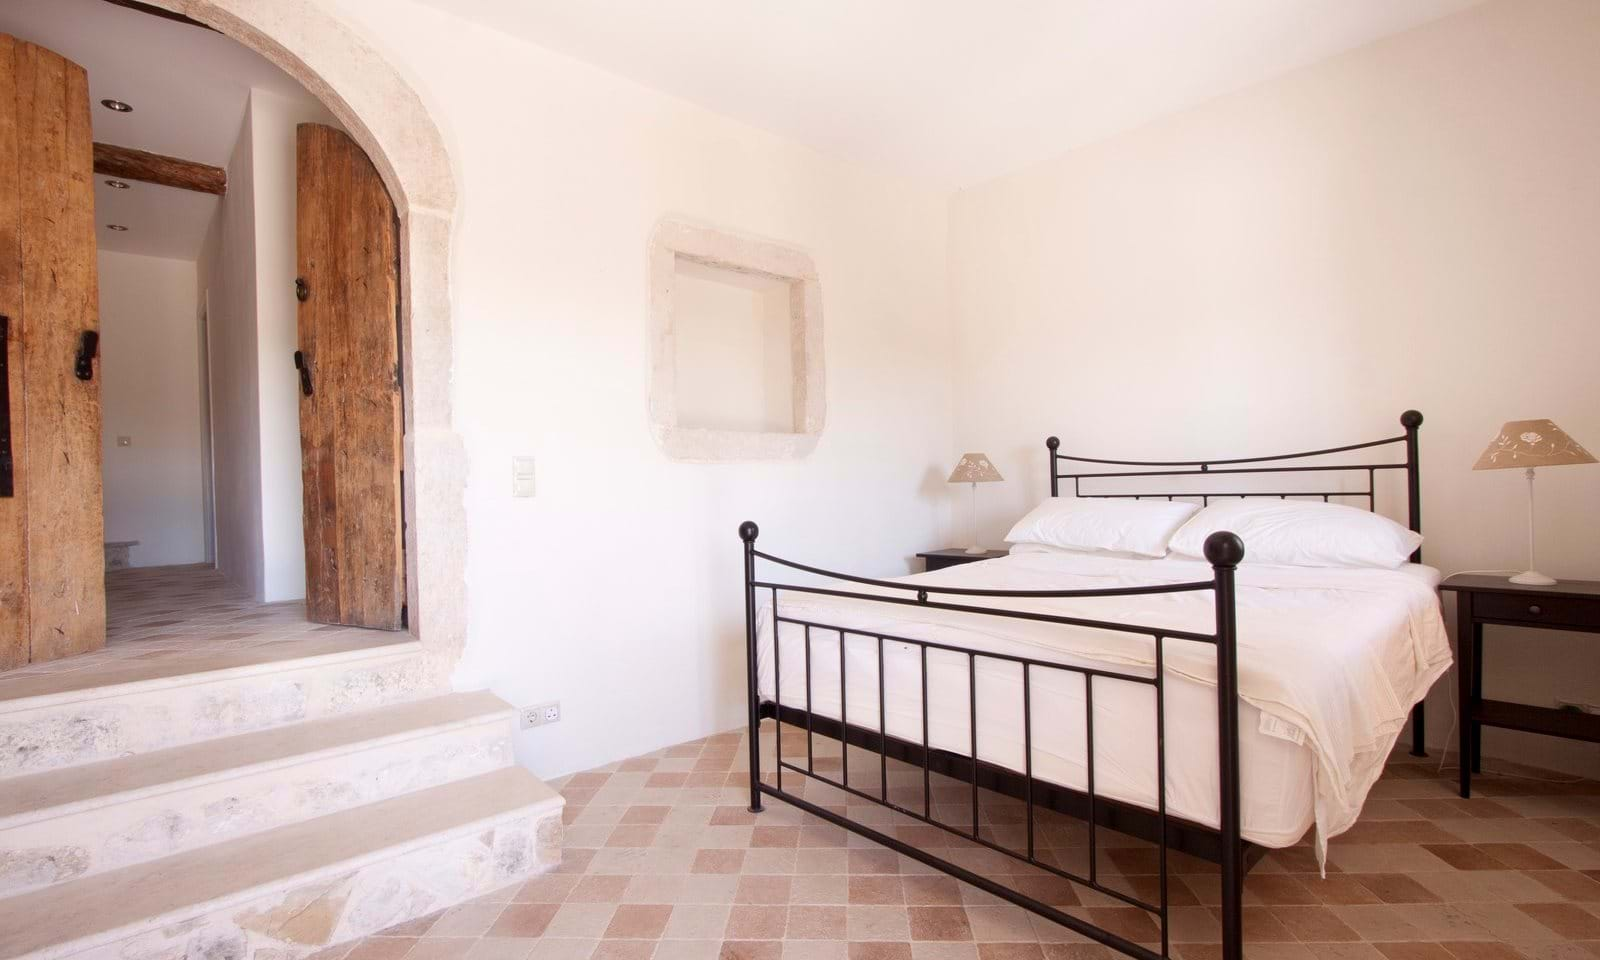 Renovated village property in Corfu